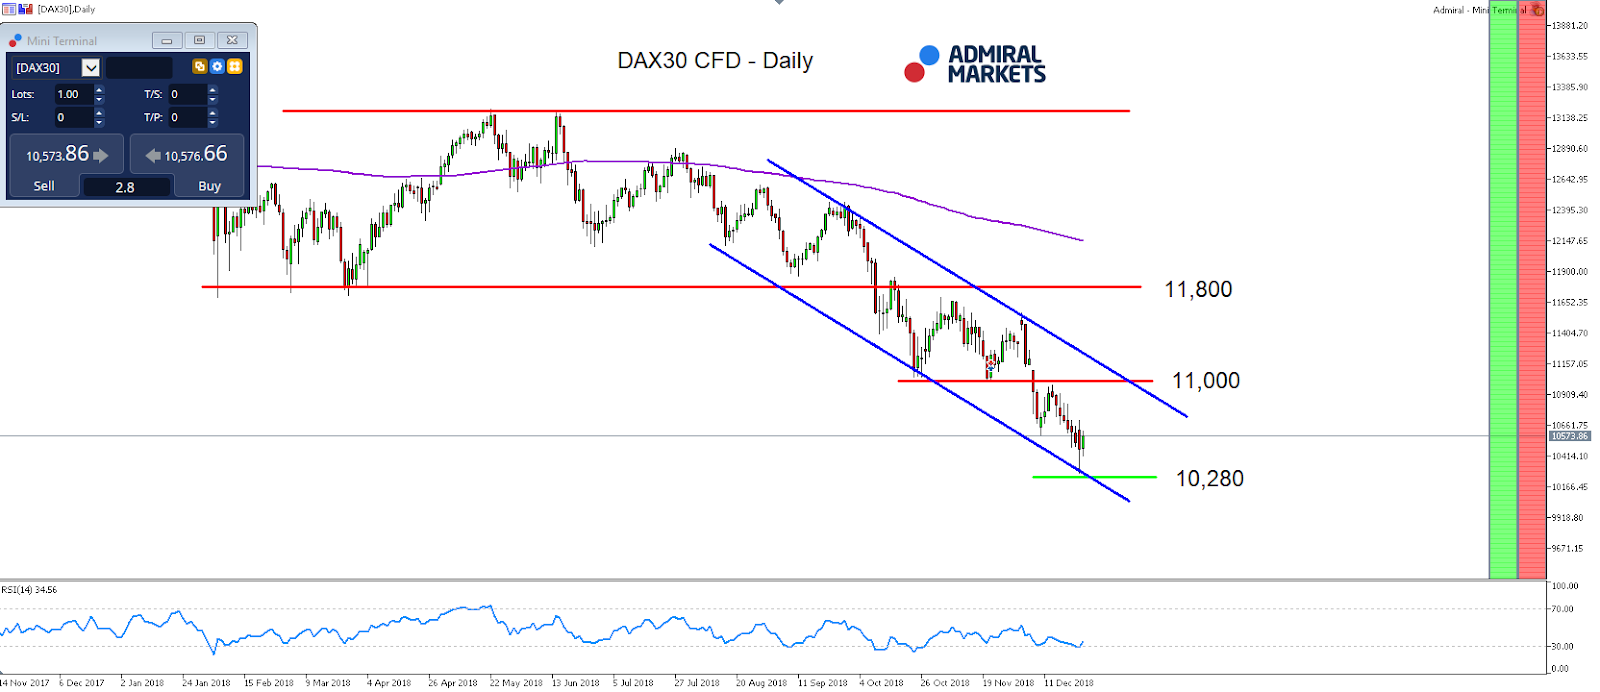 DAX30 Daily